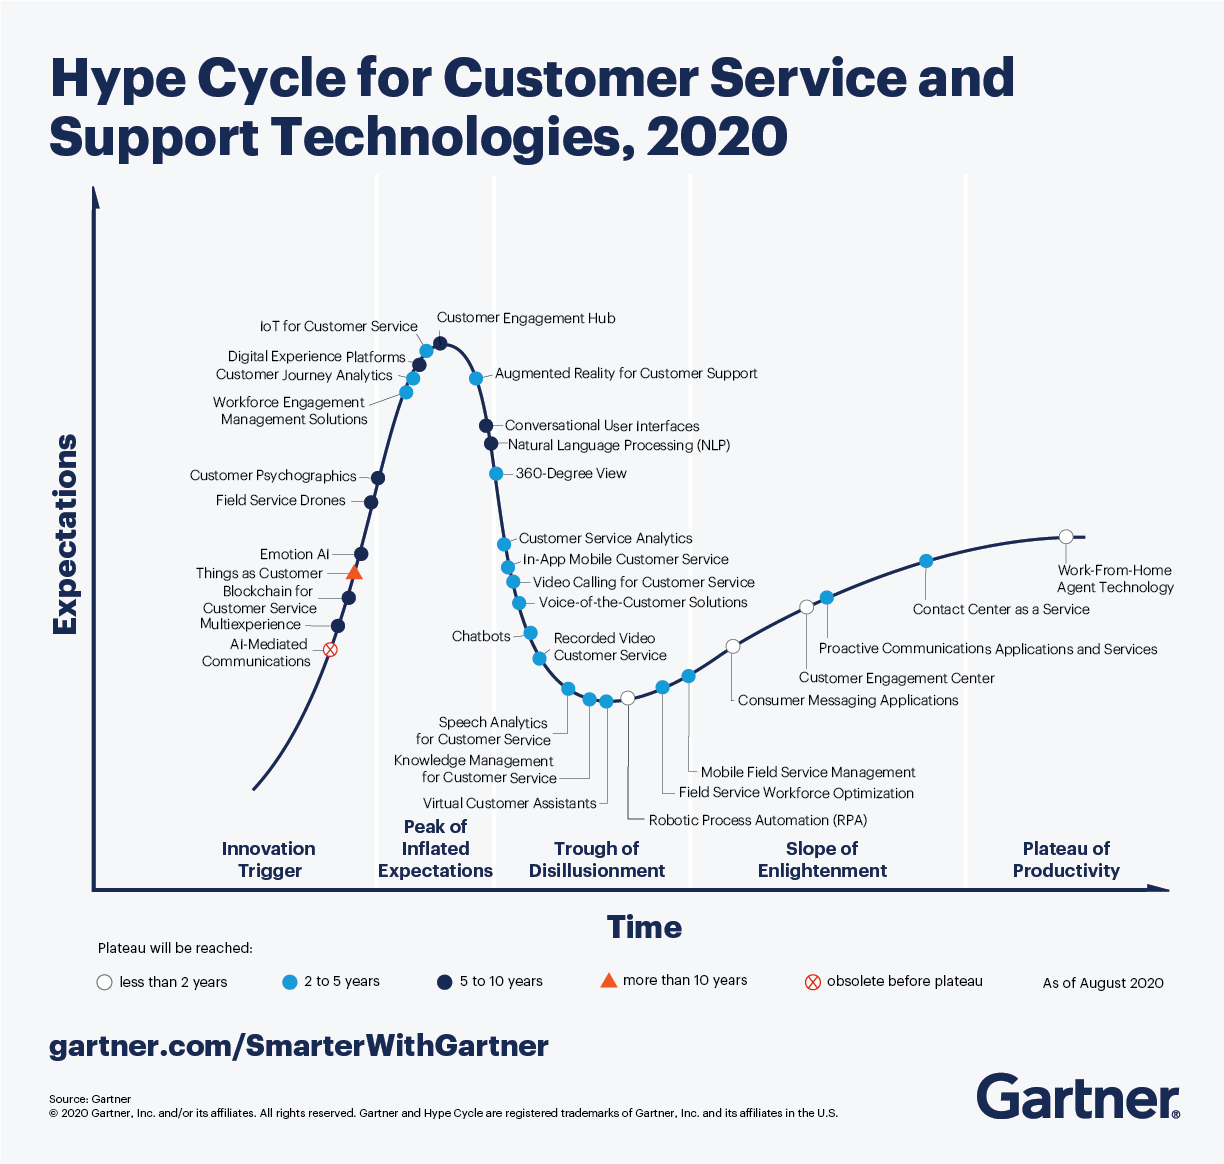 Gartner Hype Cycle for Customer Service and Support Technologies, 2020